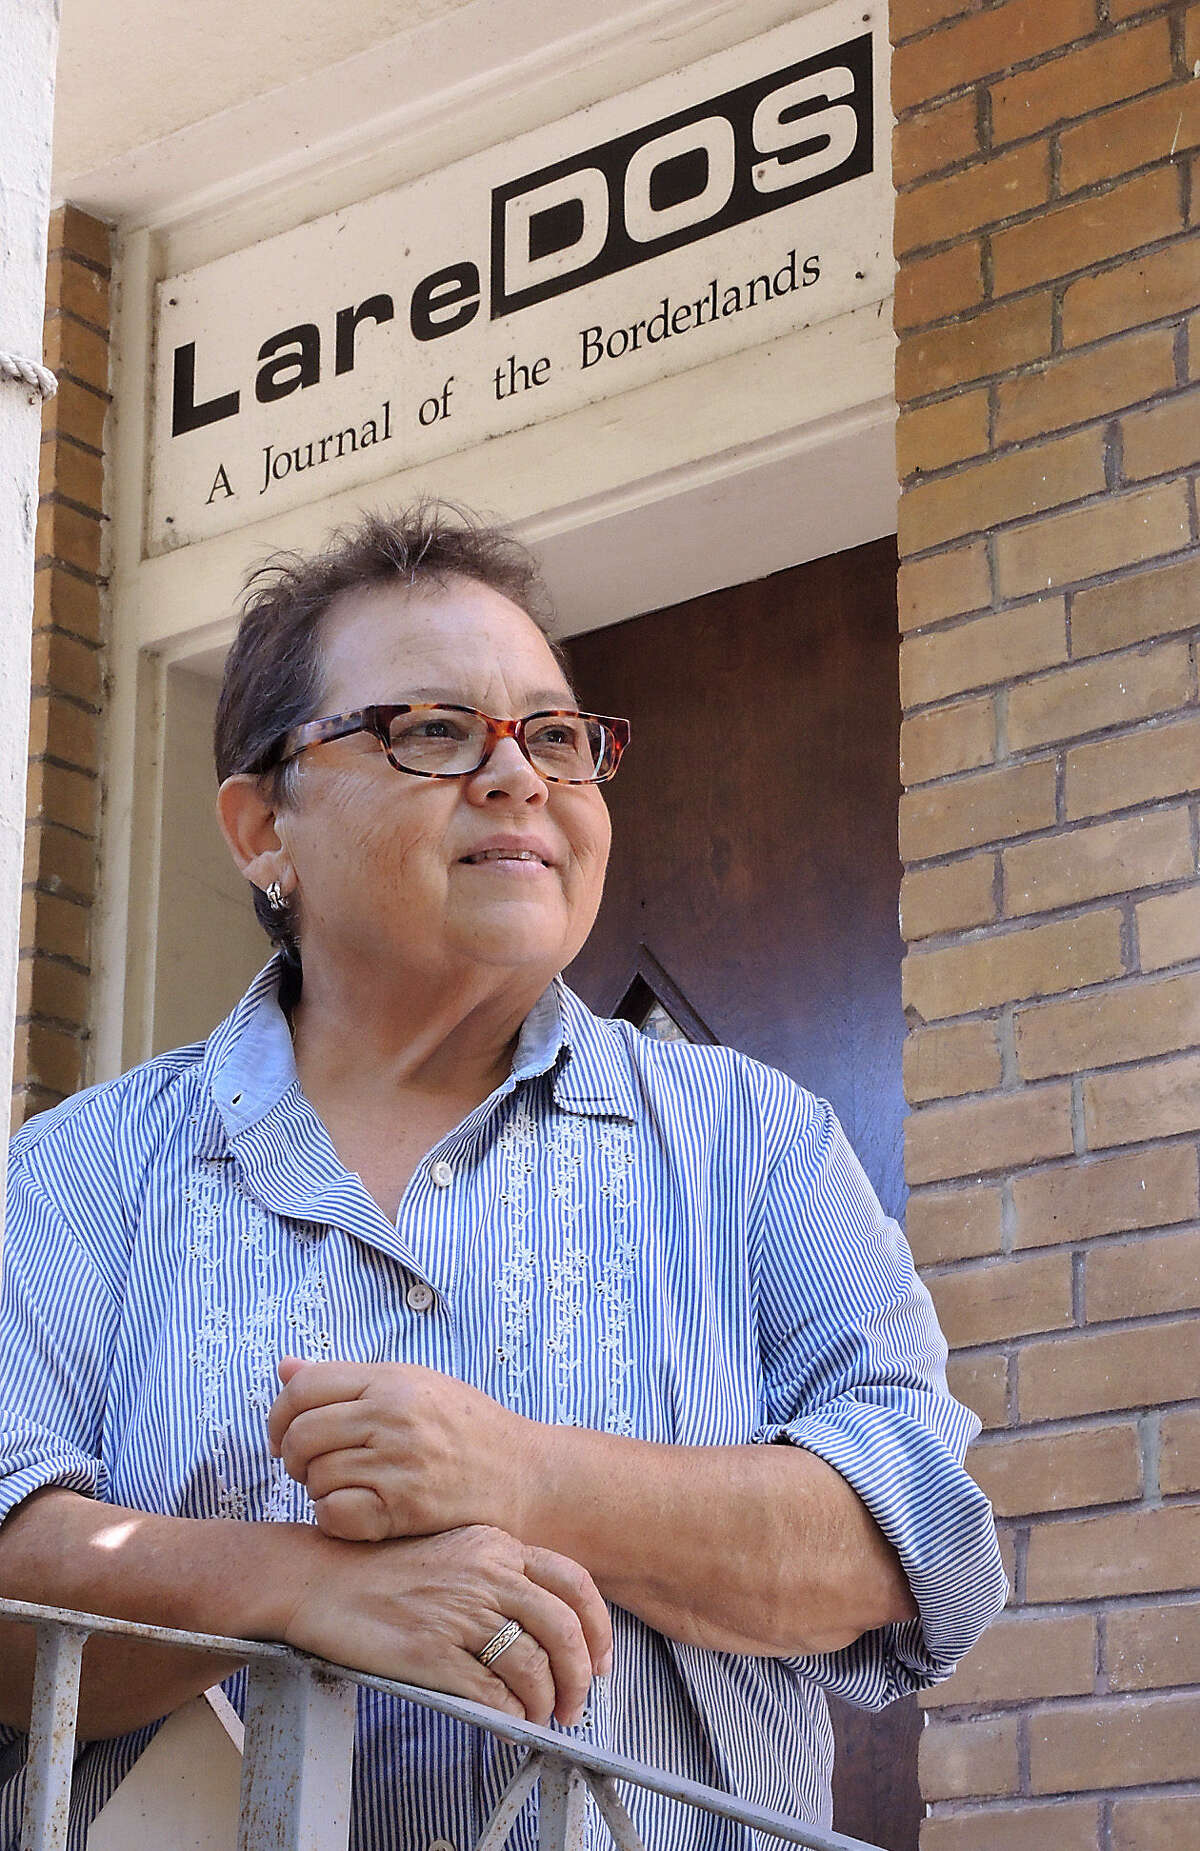 Meg Guerra last week published the final edition of LareDOS, a monthly tabloid she also owned and edited.